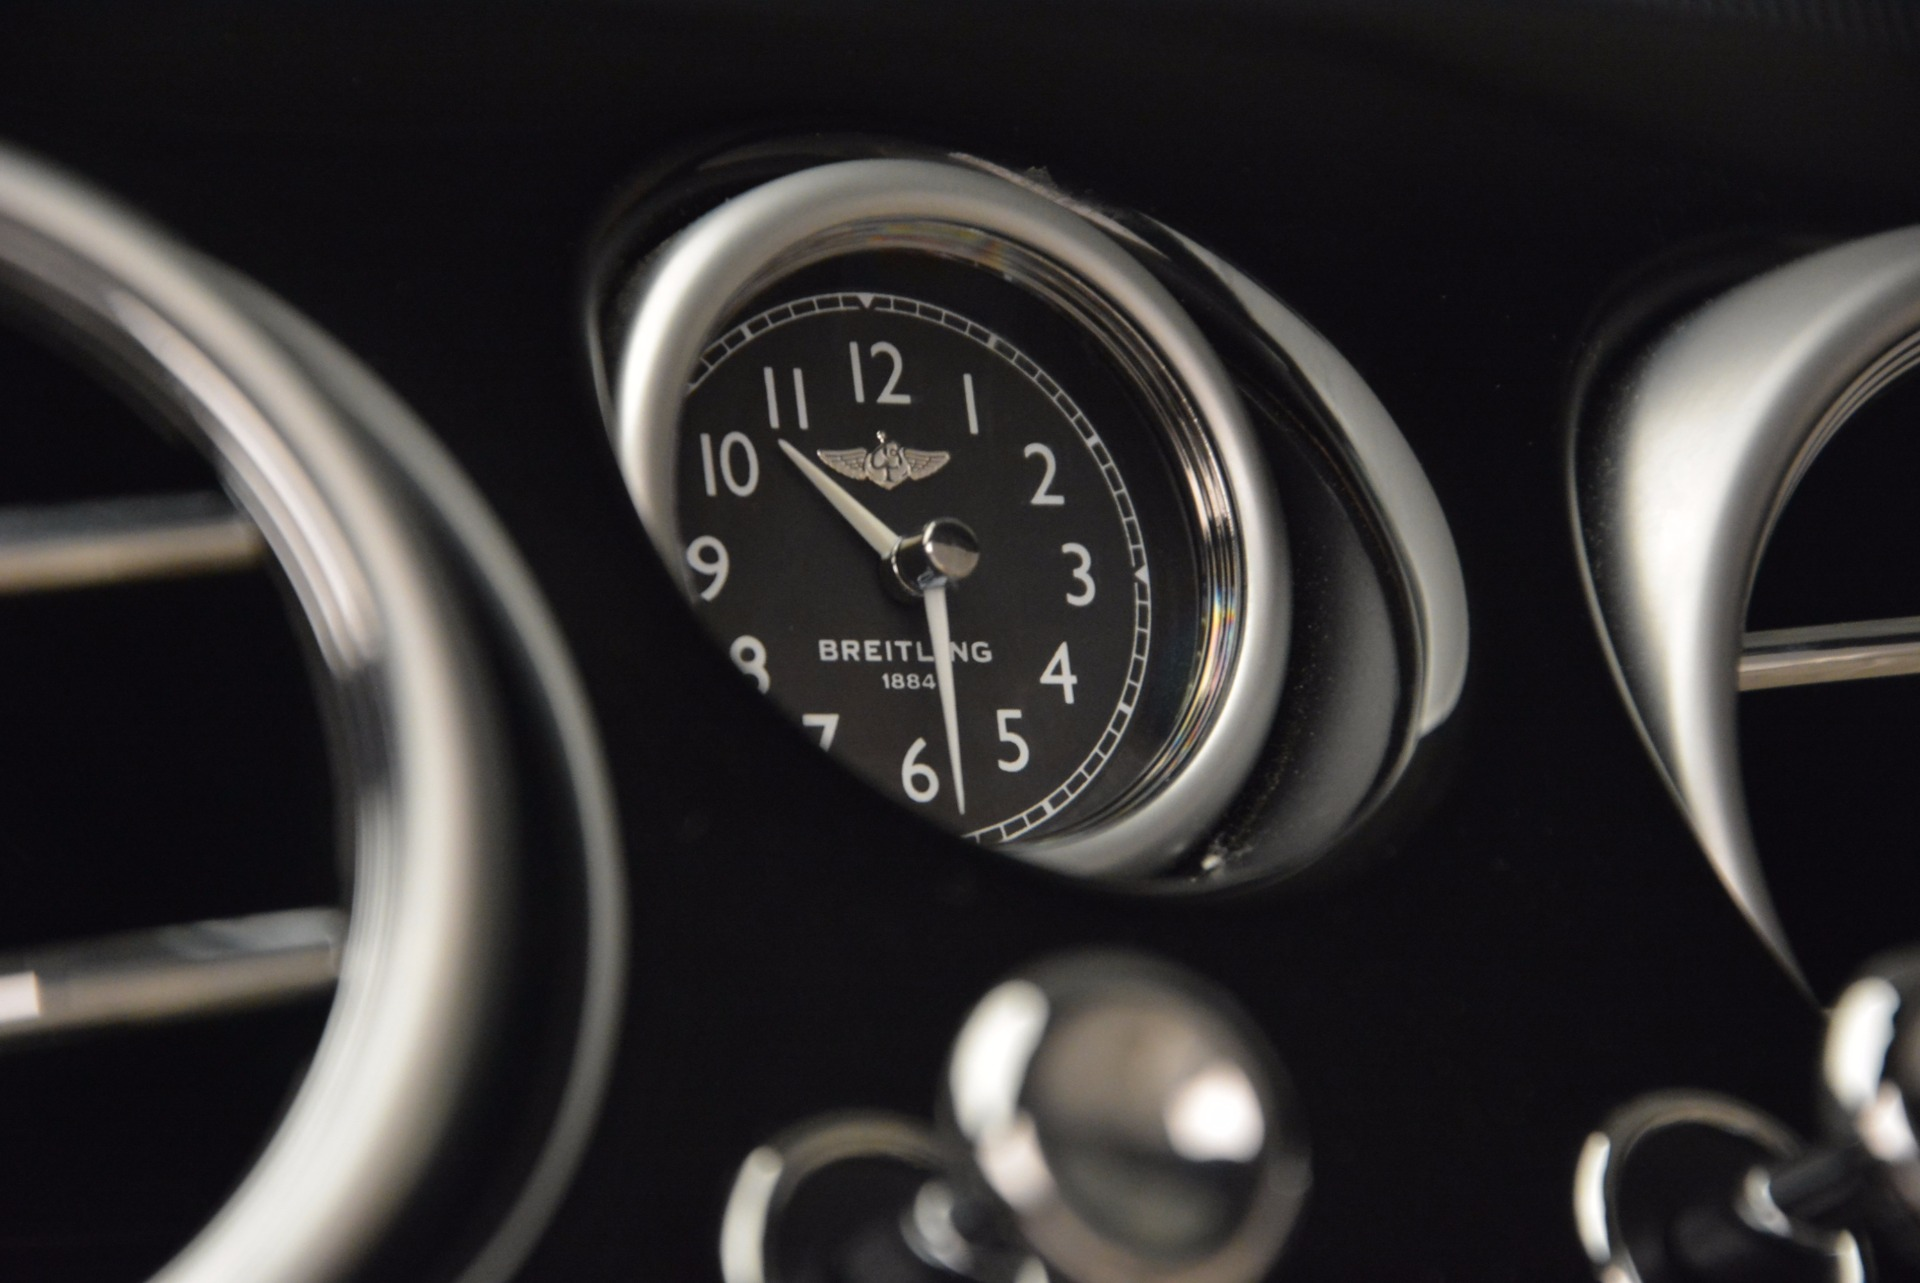 Used 2015 Bentley Continental GT V8 S For Sale In Westport, CT 1175_p44